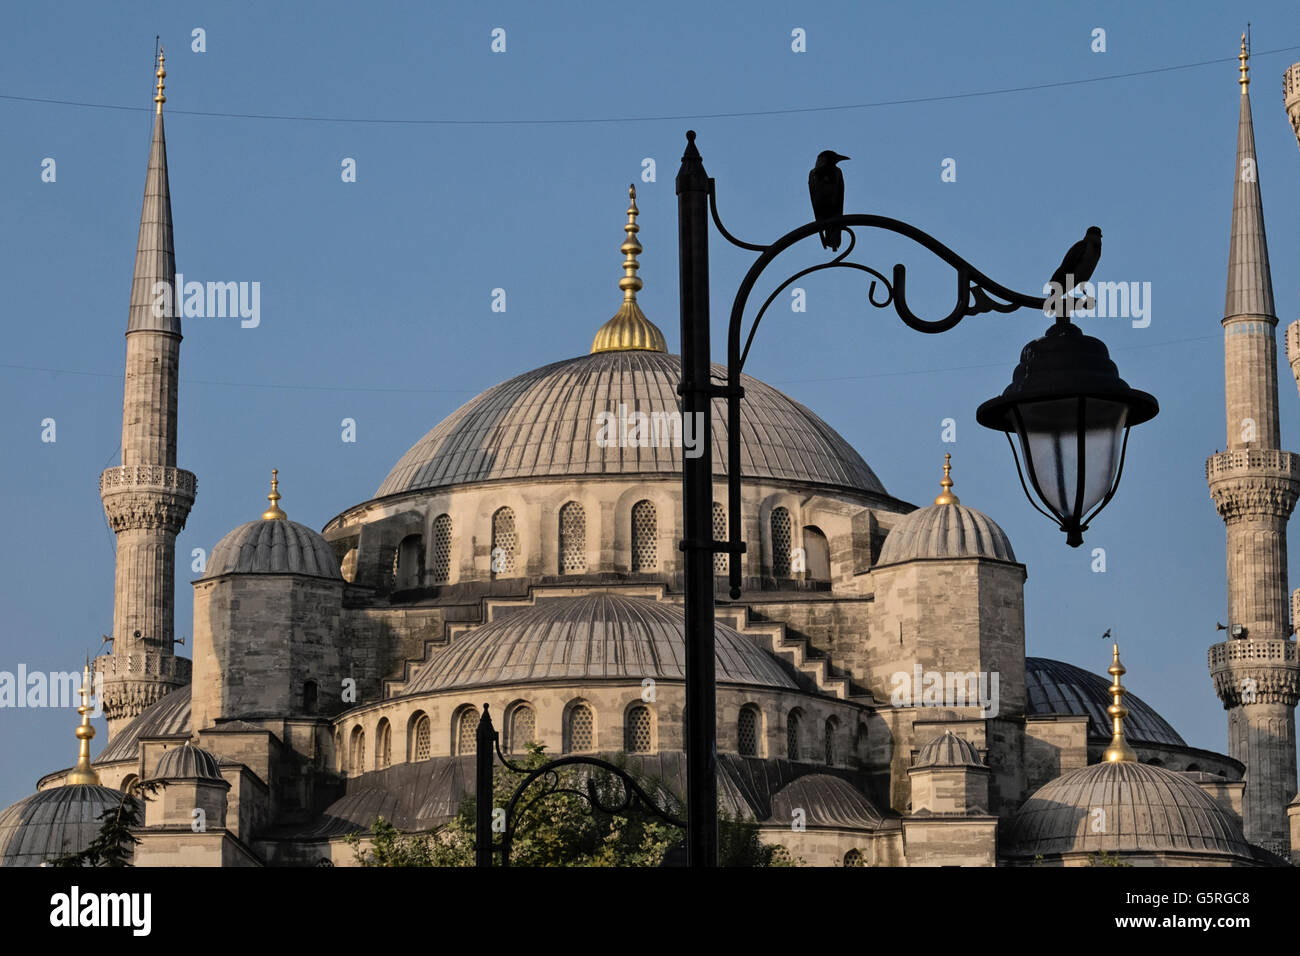 Birds perch on a light pole in front of the Blue mosque in Sultanahmet park, Istanbul, Turkey - Stock Image